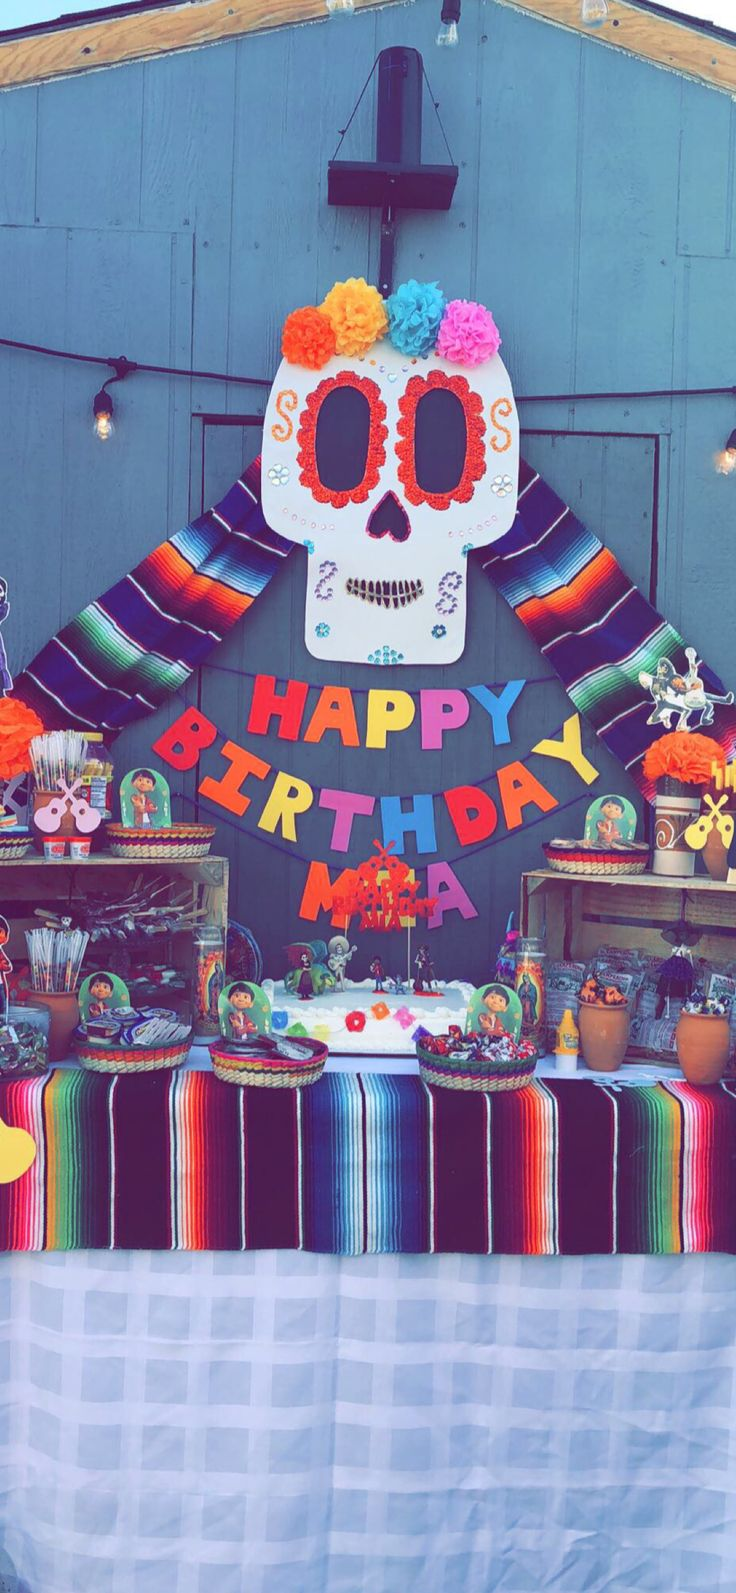 Disney Pixar Coco theme party